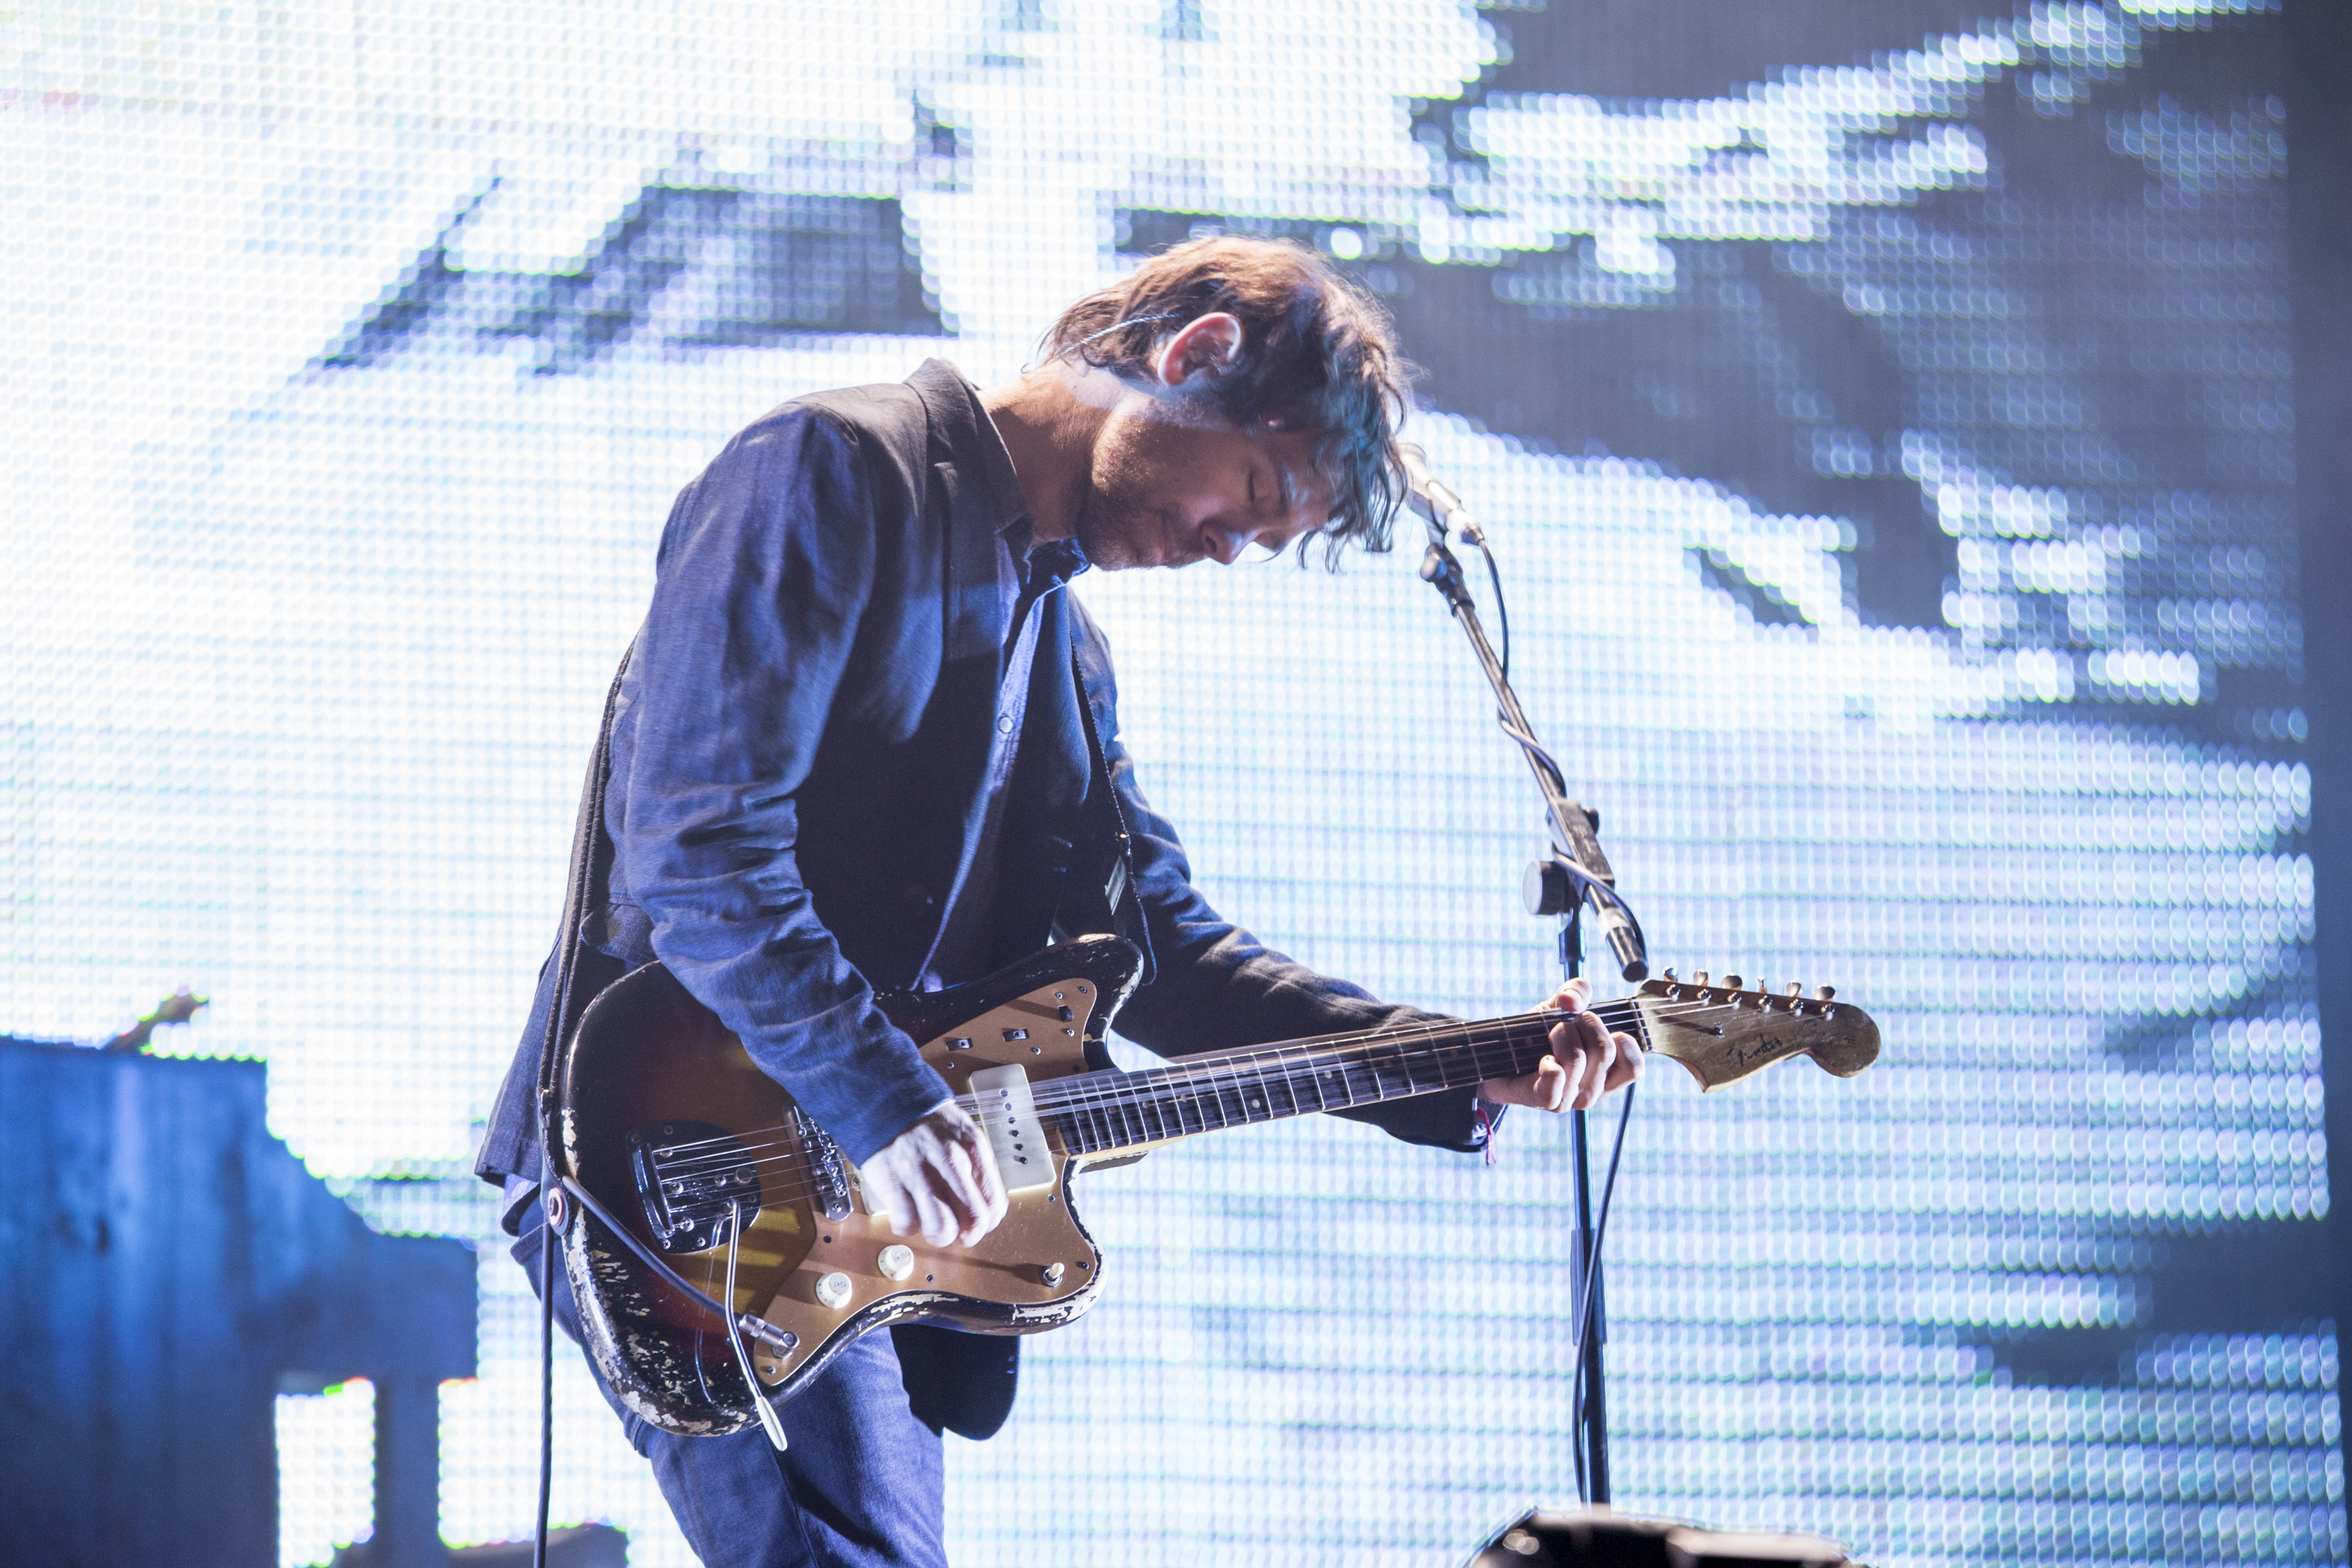 BARCELONA, SPAIN - MAY 30: Aaron Dessner of The National performs on stage on day 3 of Primavera Sound 2014 on May 30, 2014 i